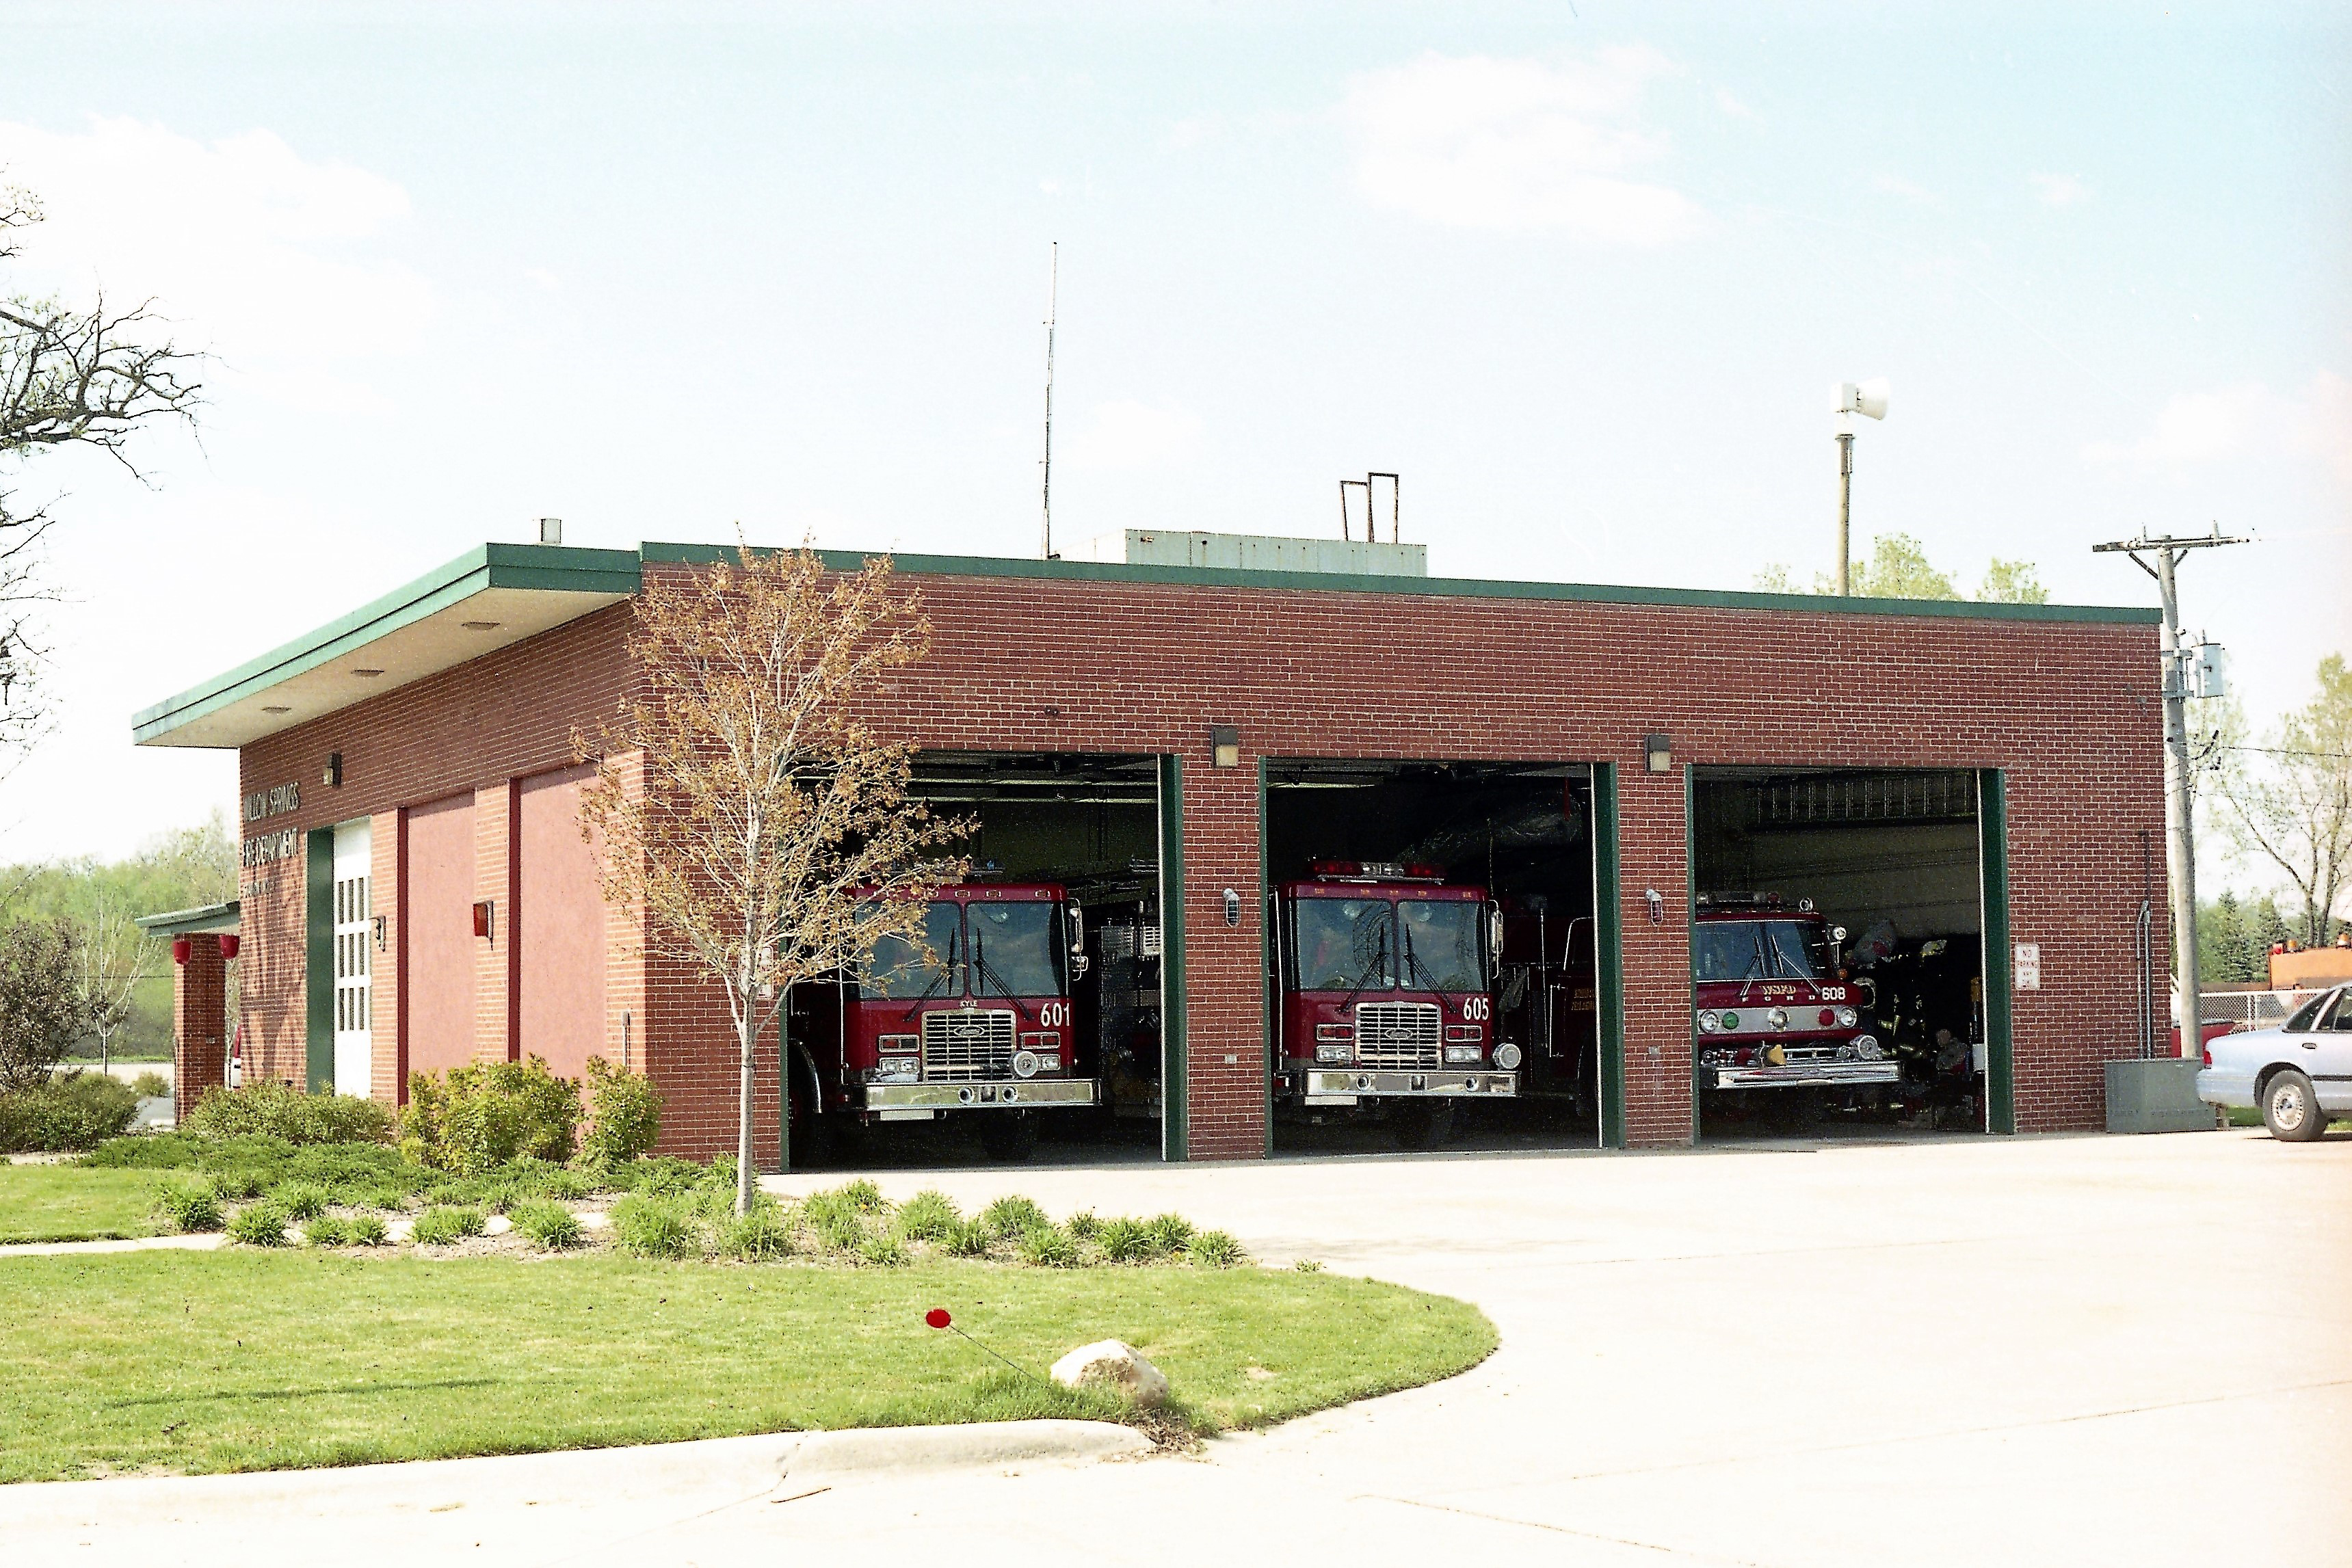 WILLOW SPRING FD STAION 2 NEW BAYS (1)